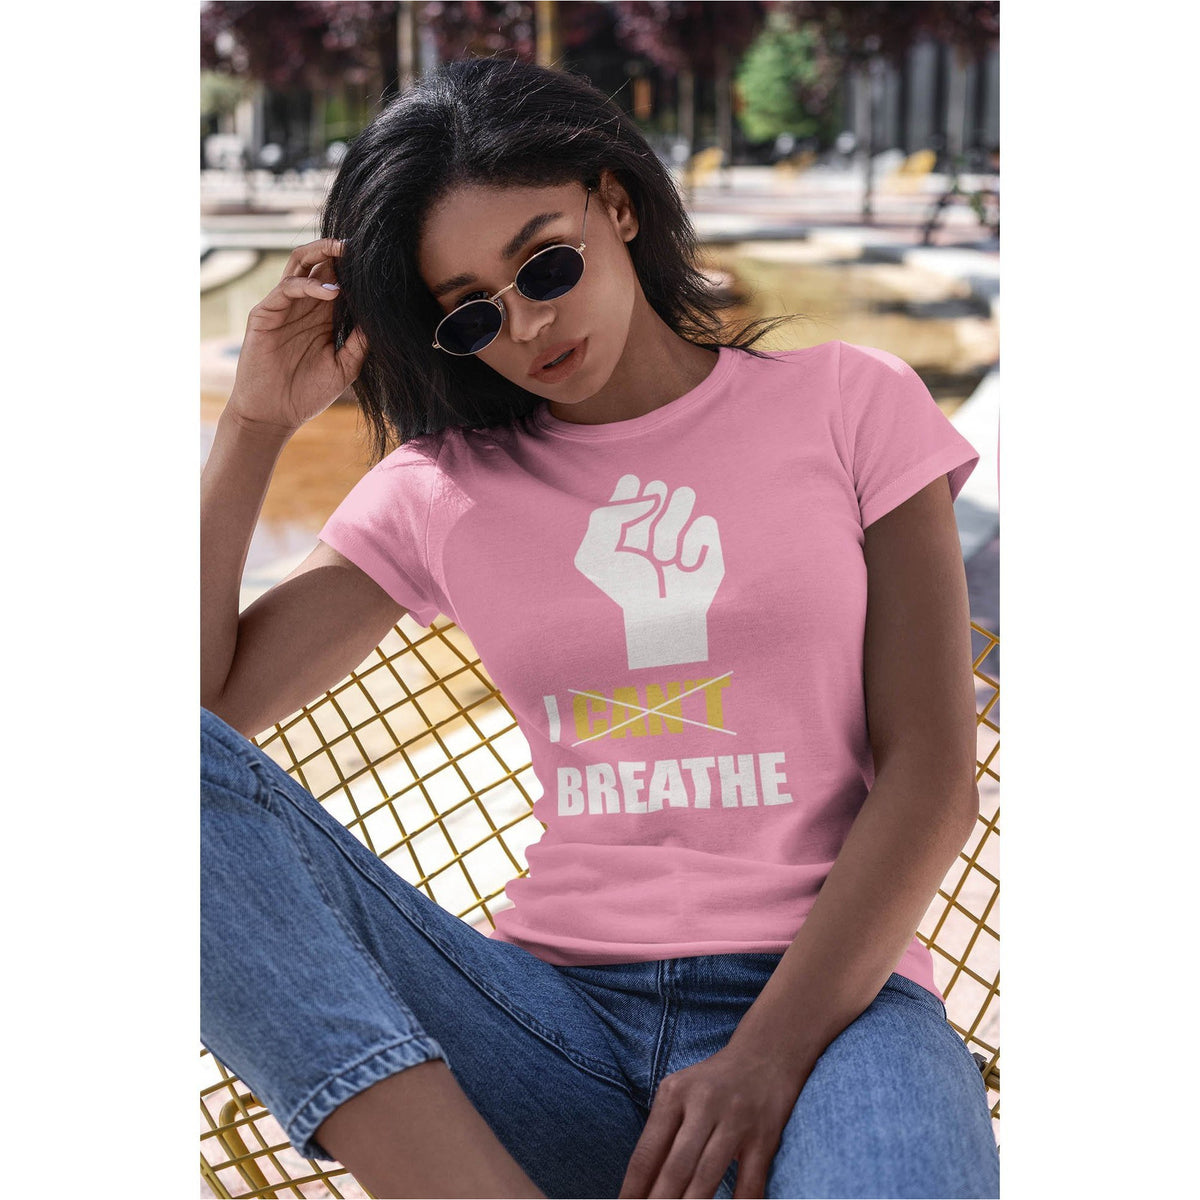 I Can't Breathe Women's Premium T-Shirt